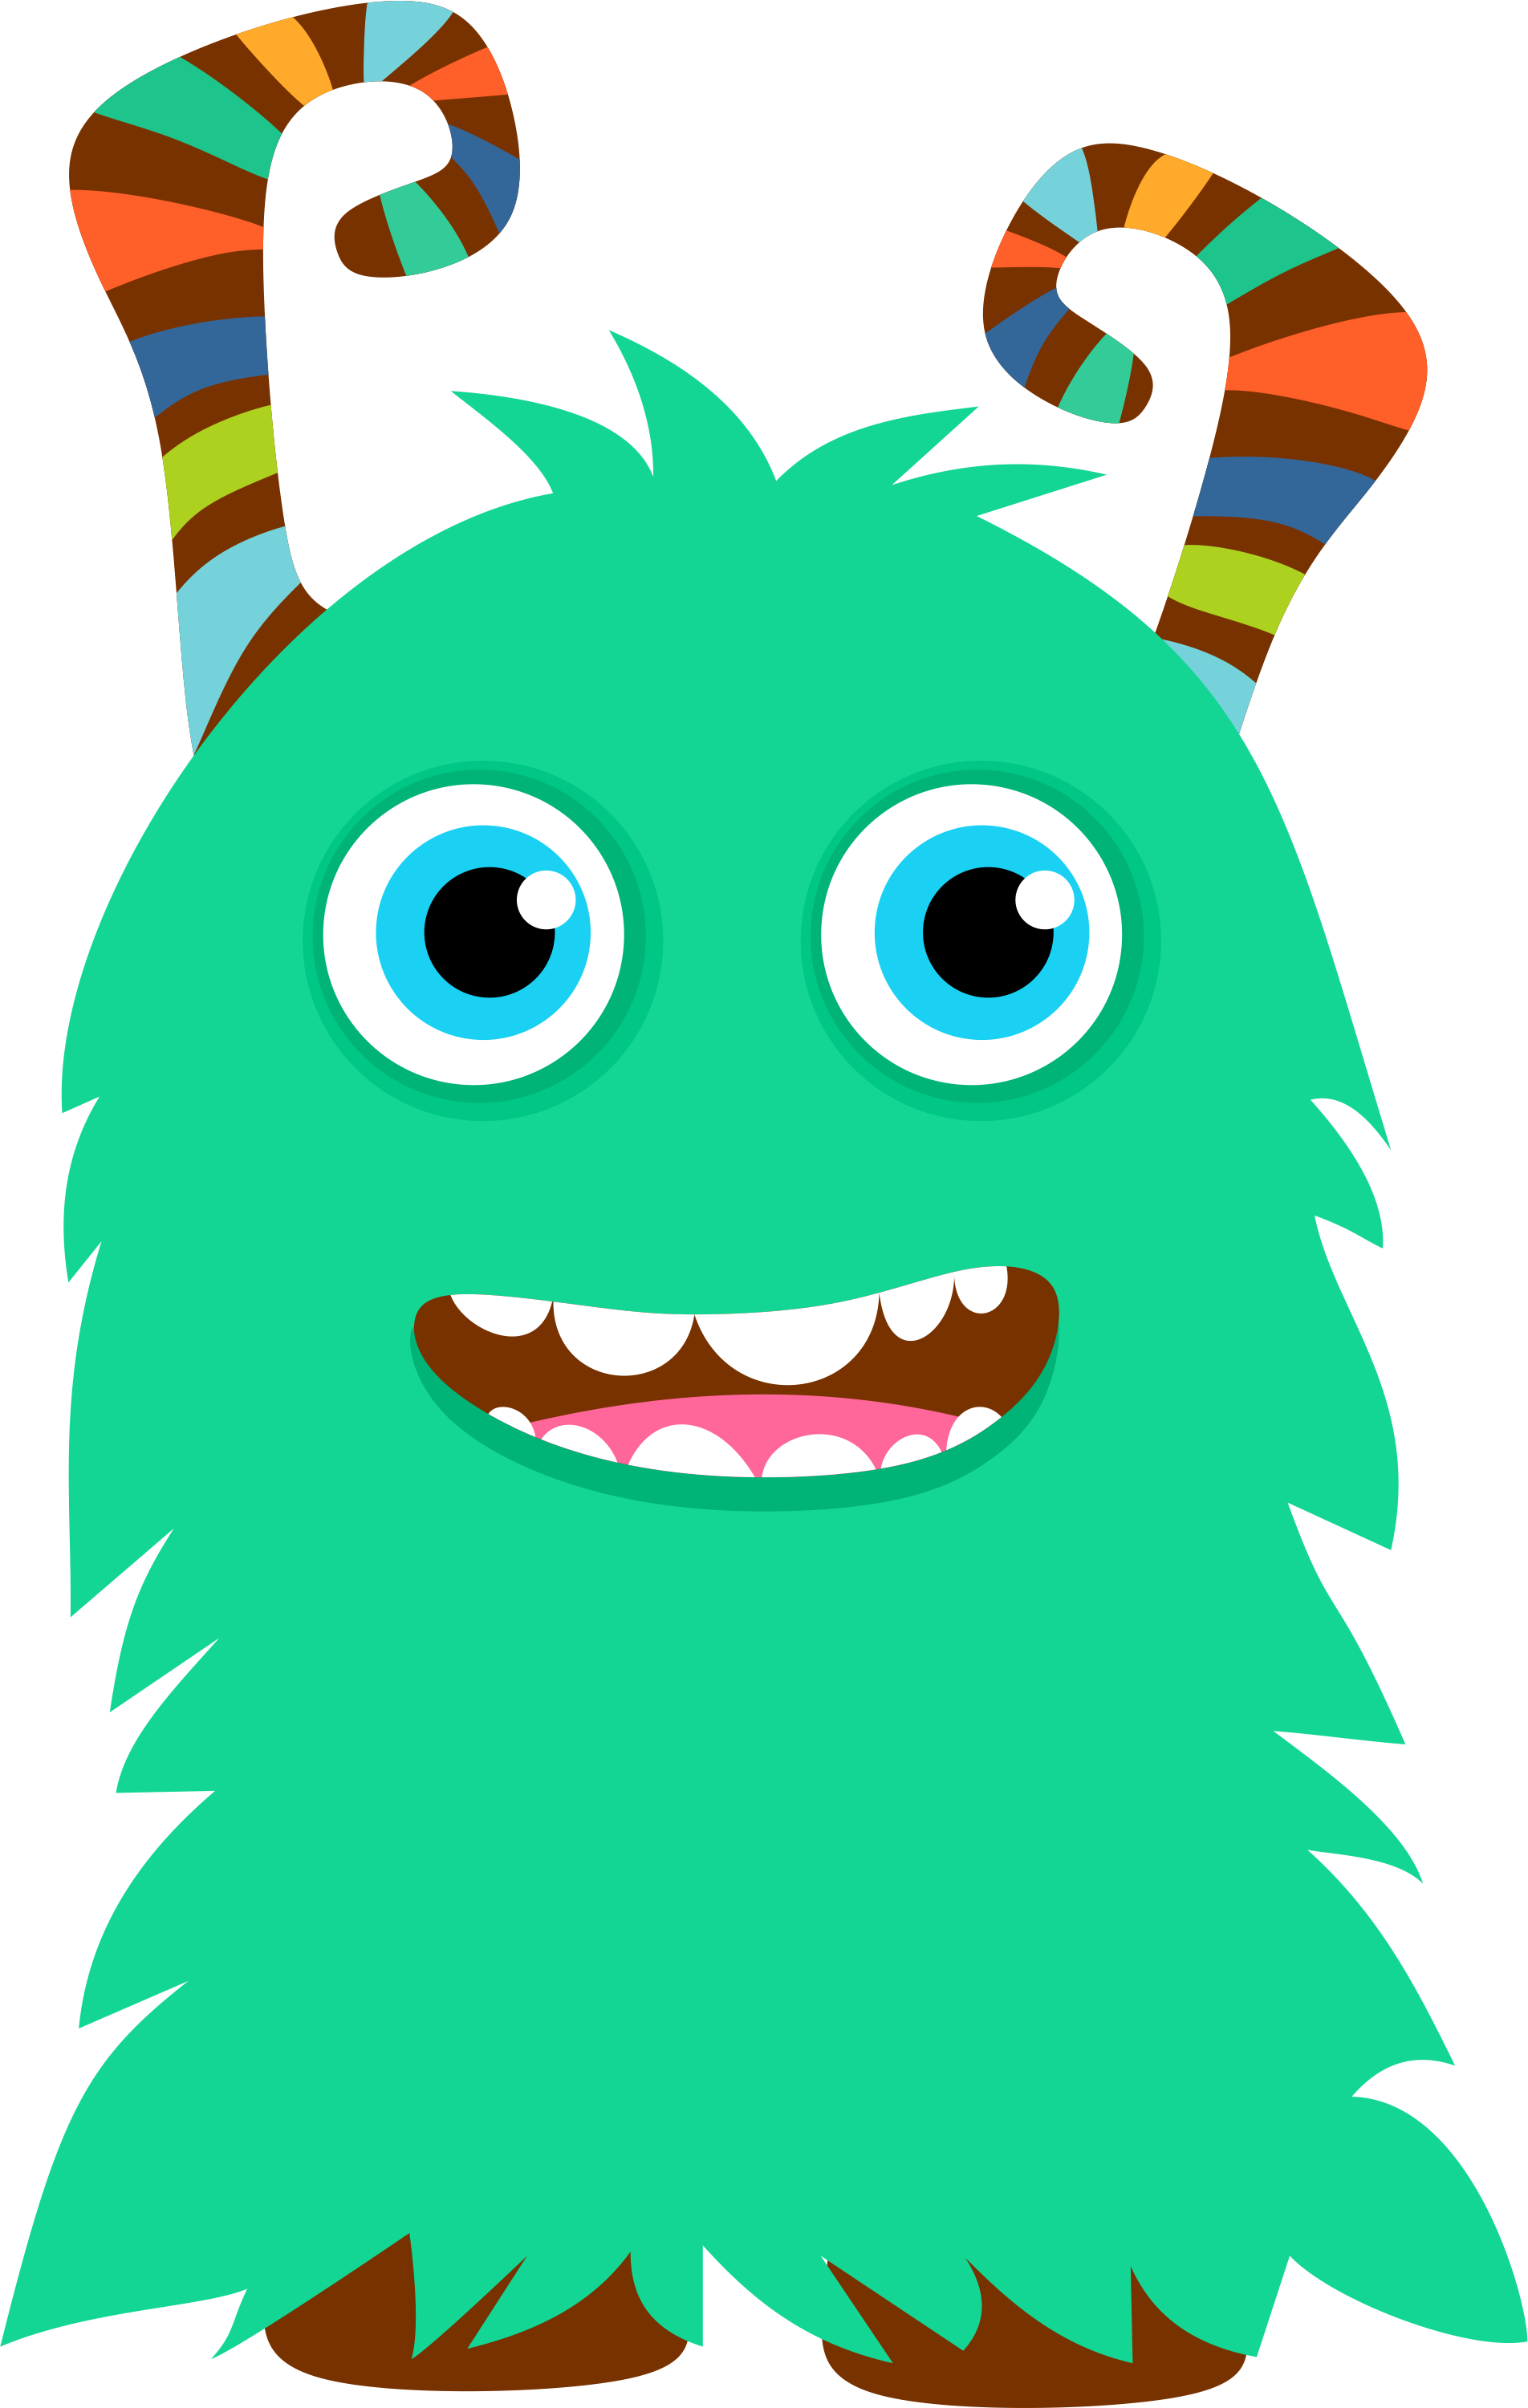 Ch b de minus. Monster clipart